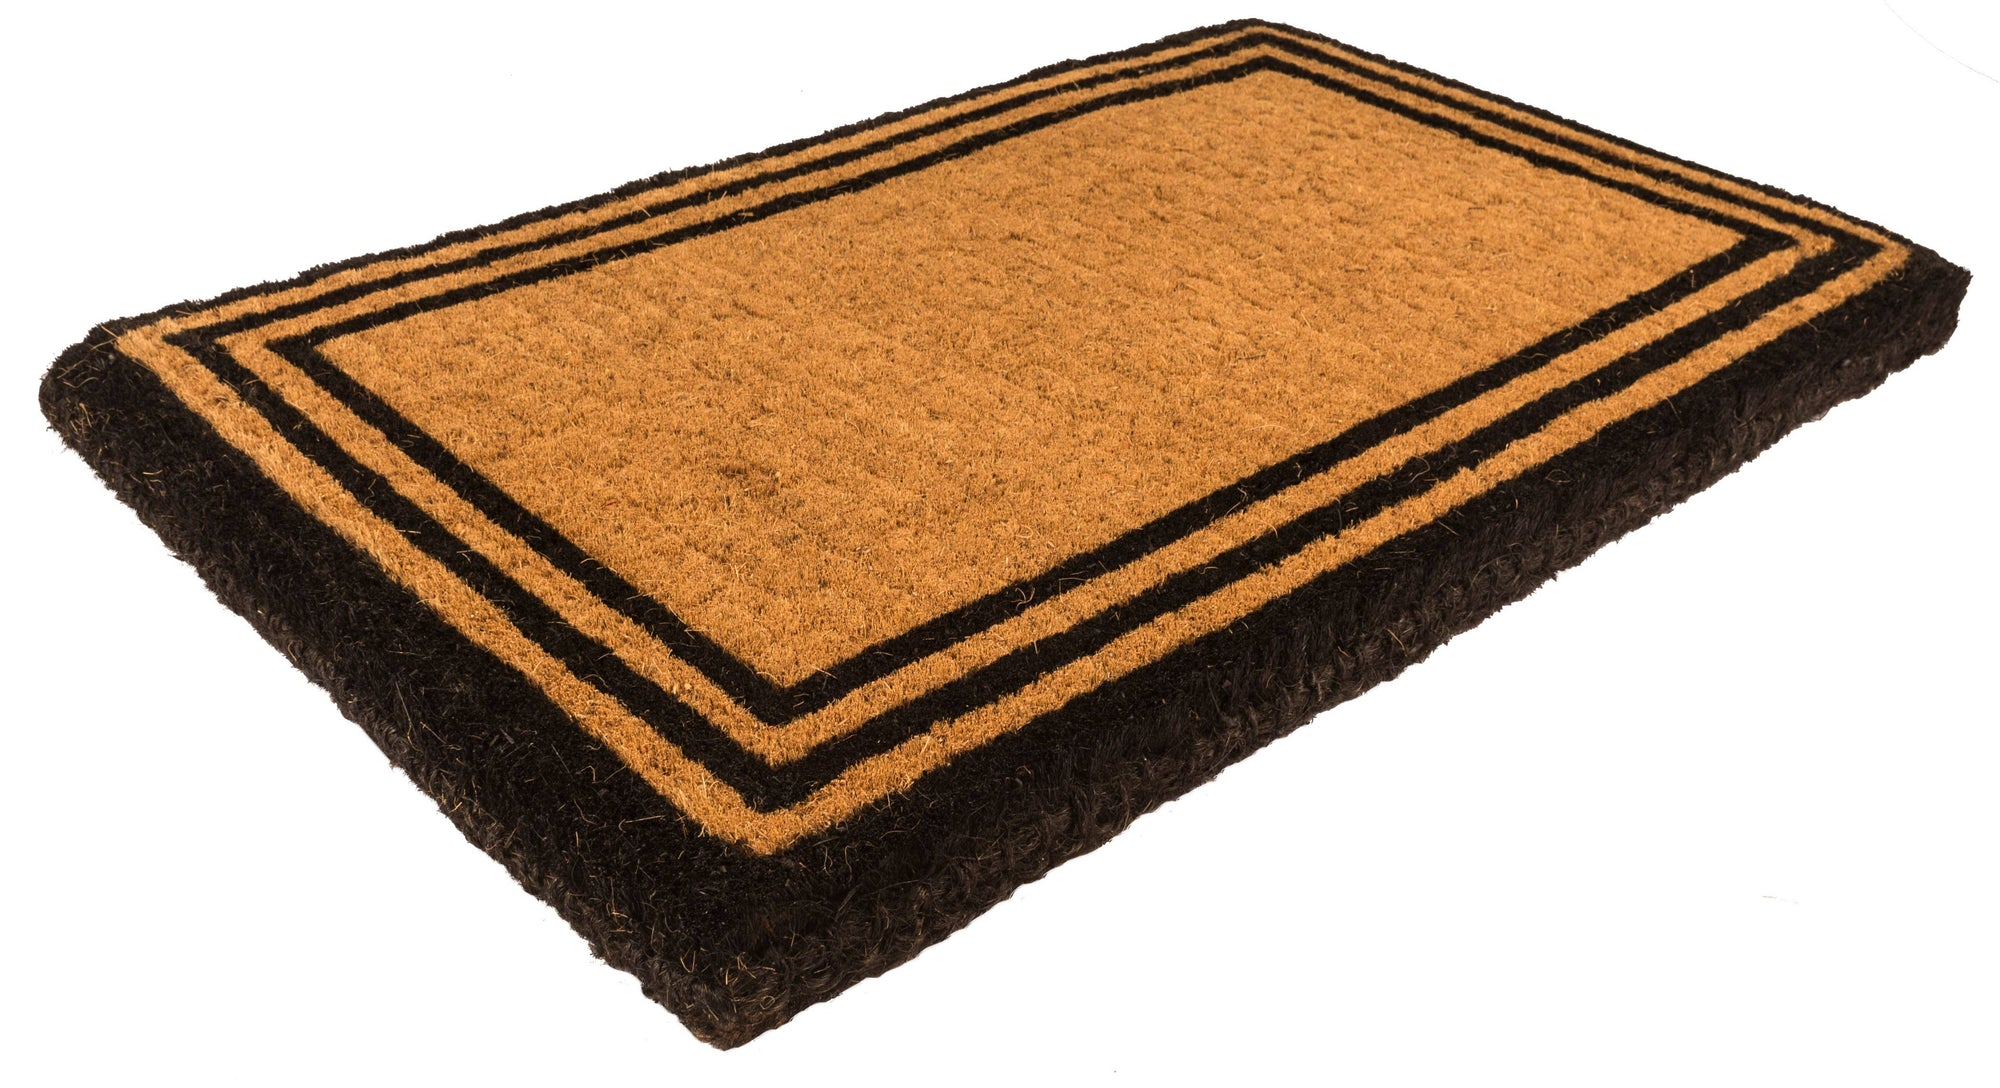 Border Coconut Fiber Doormat